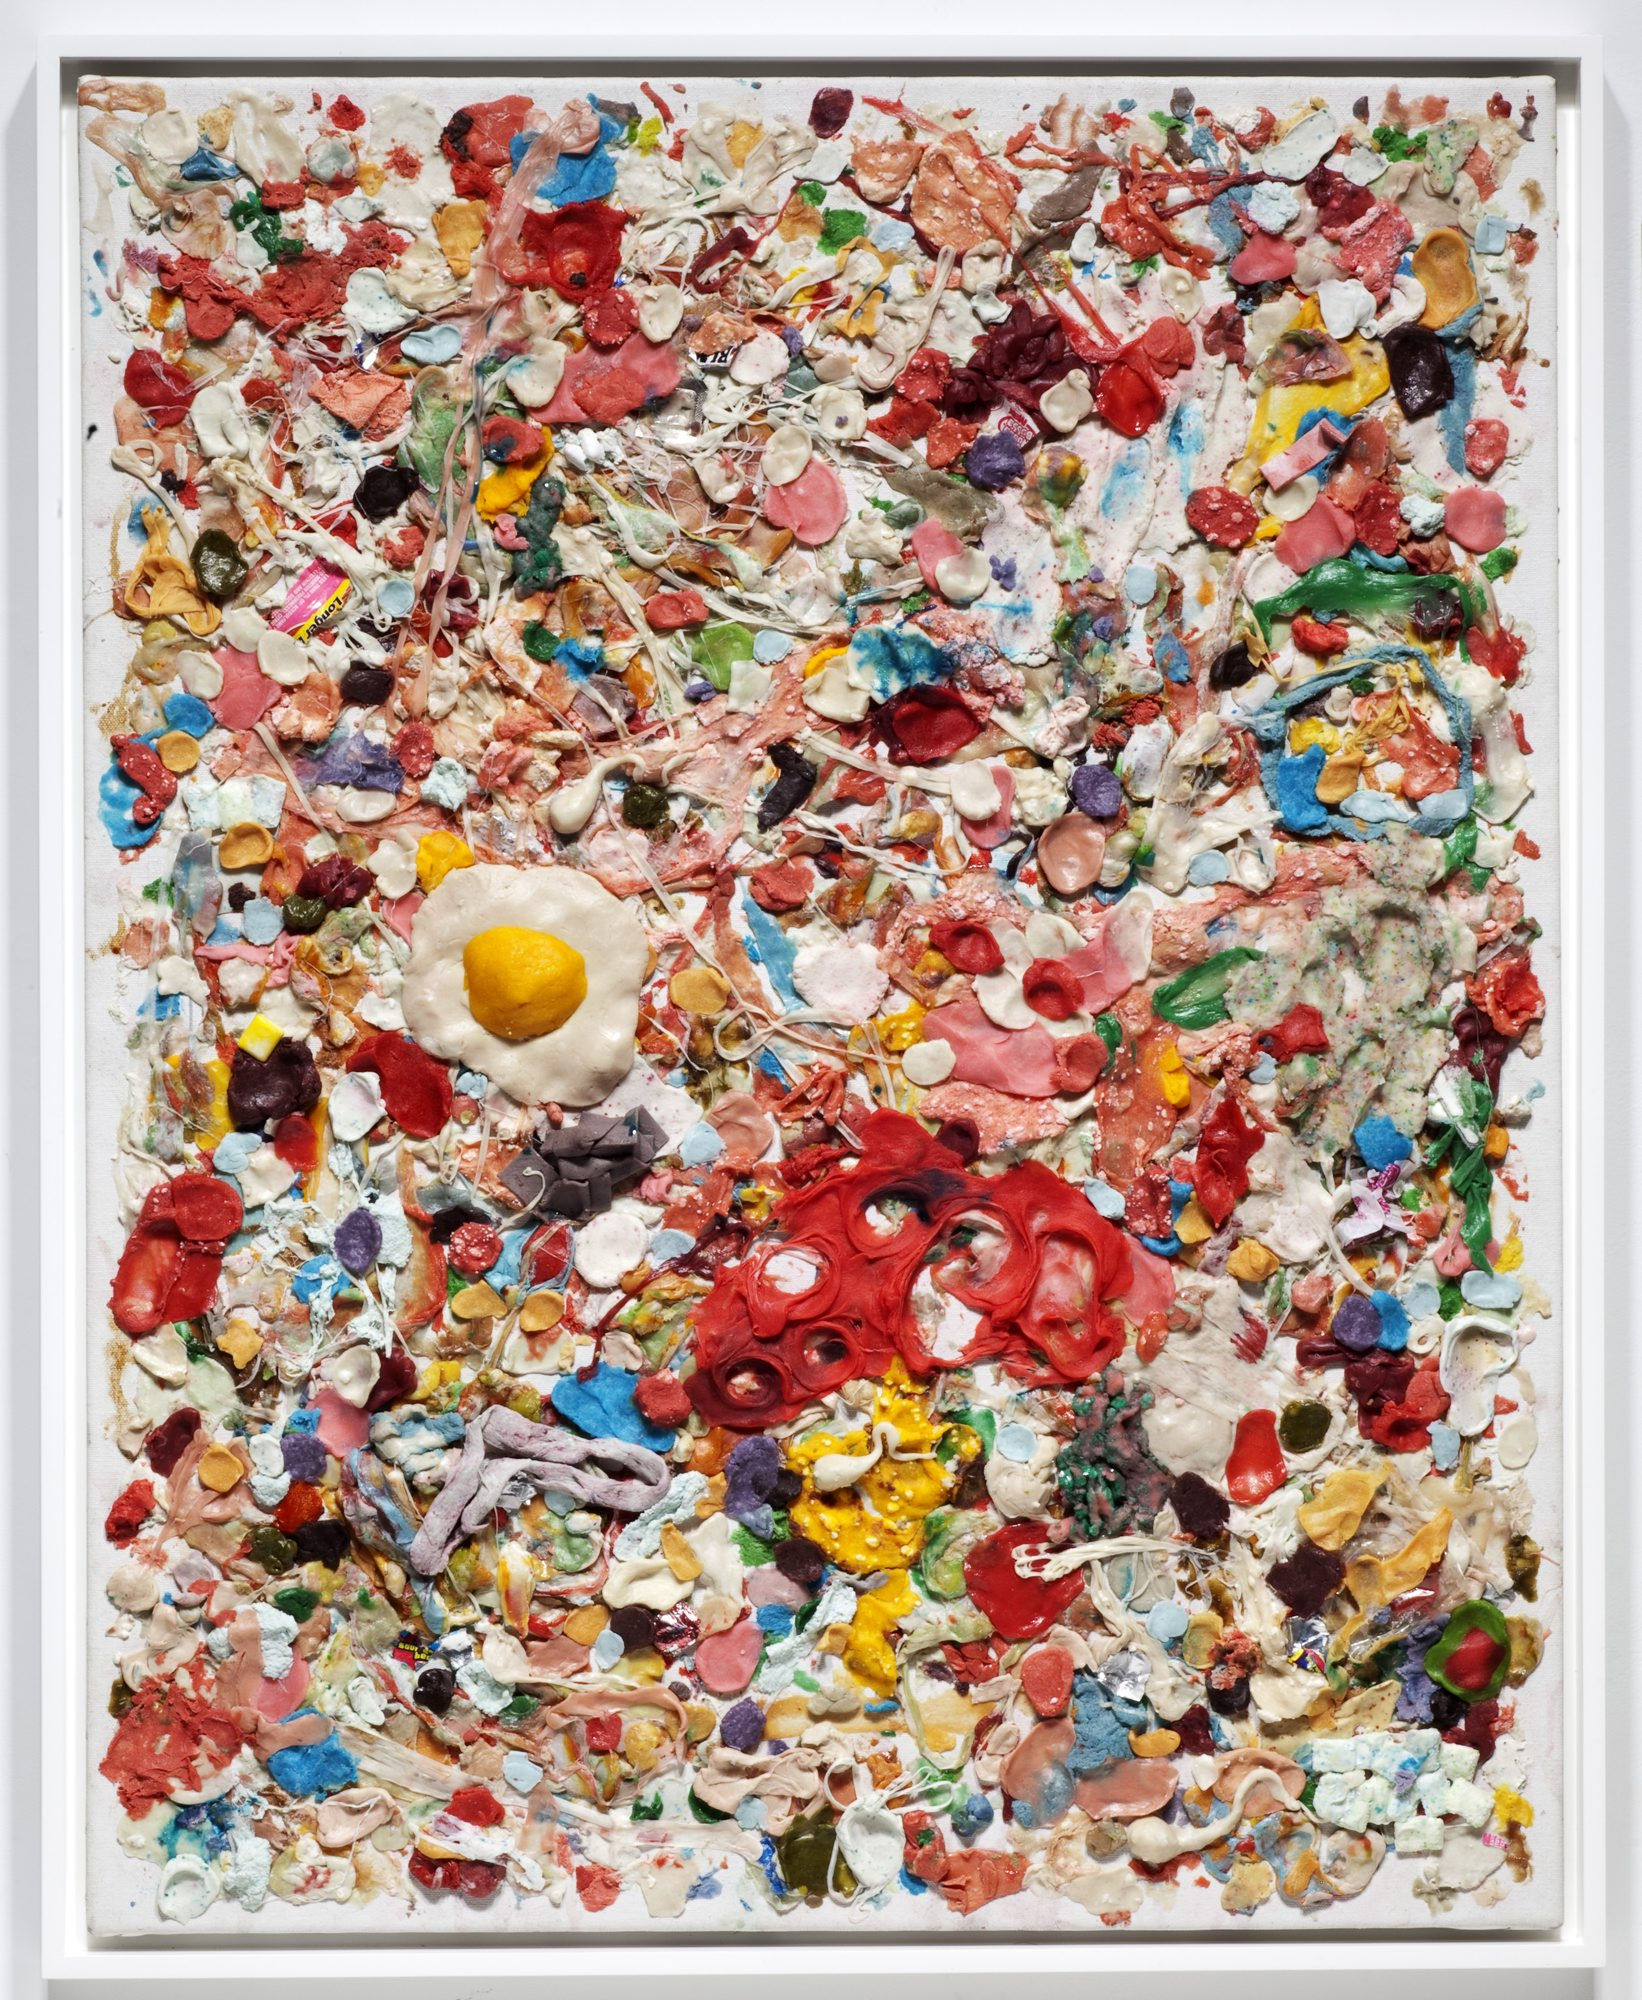 Forget oils and acrylics – artist Dan Colen makes abstract paintings with gum